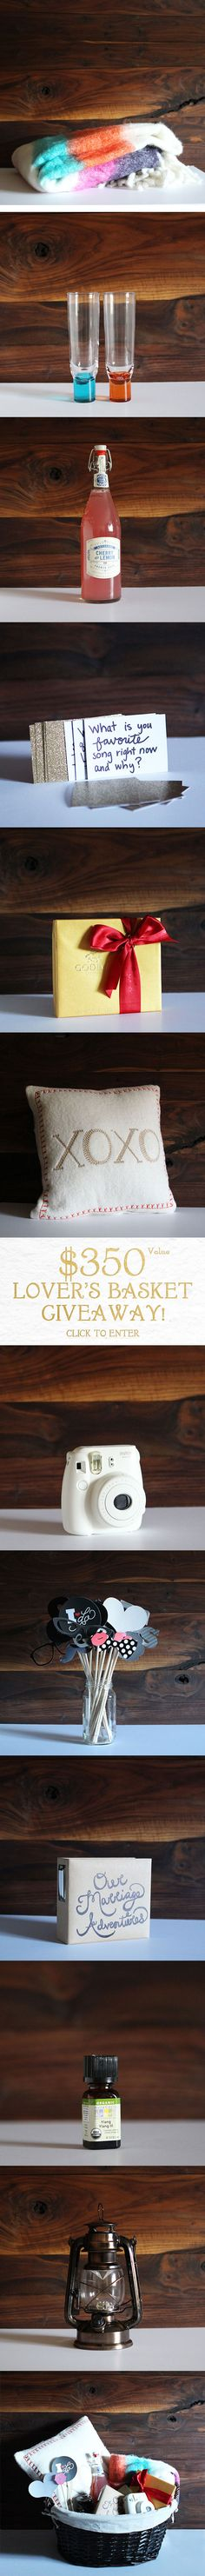 The Perfect Marriage Date: The Lover's Basket Giveaway – $350 Value --- Read More Here http://unveiledwife.com/the-perfect-marriage-date-the-lovers-basket-giveaway-350-value/